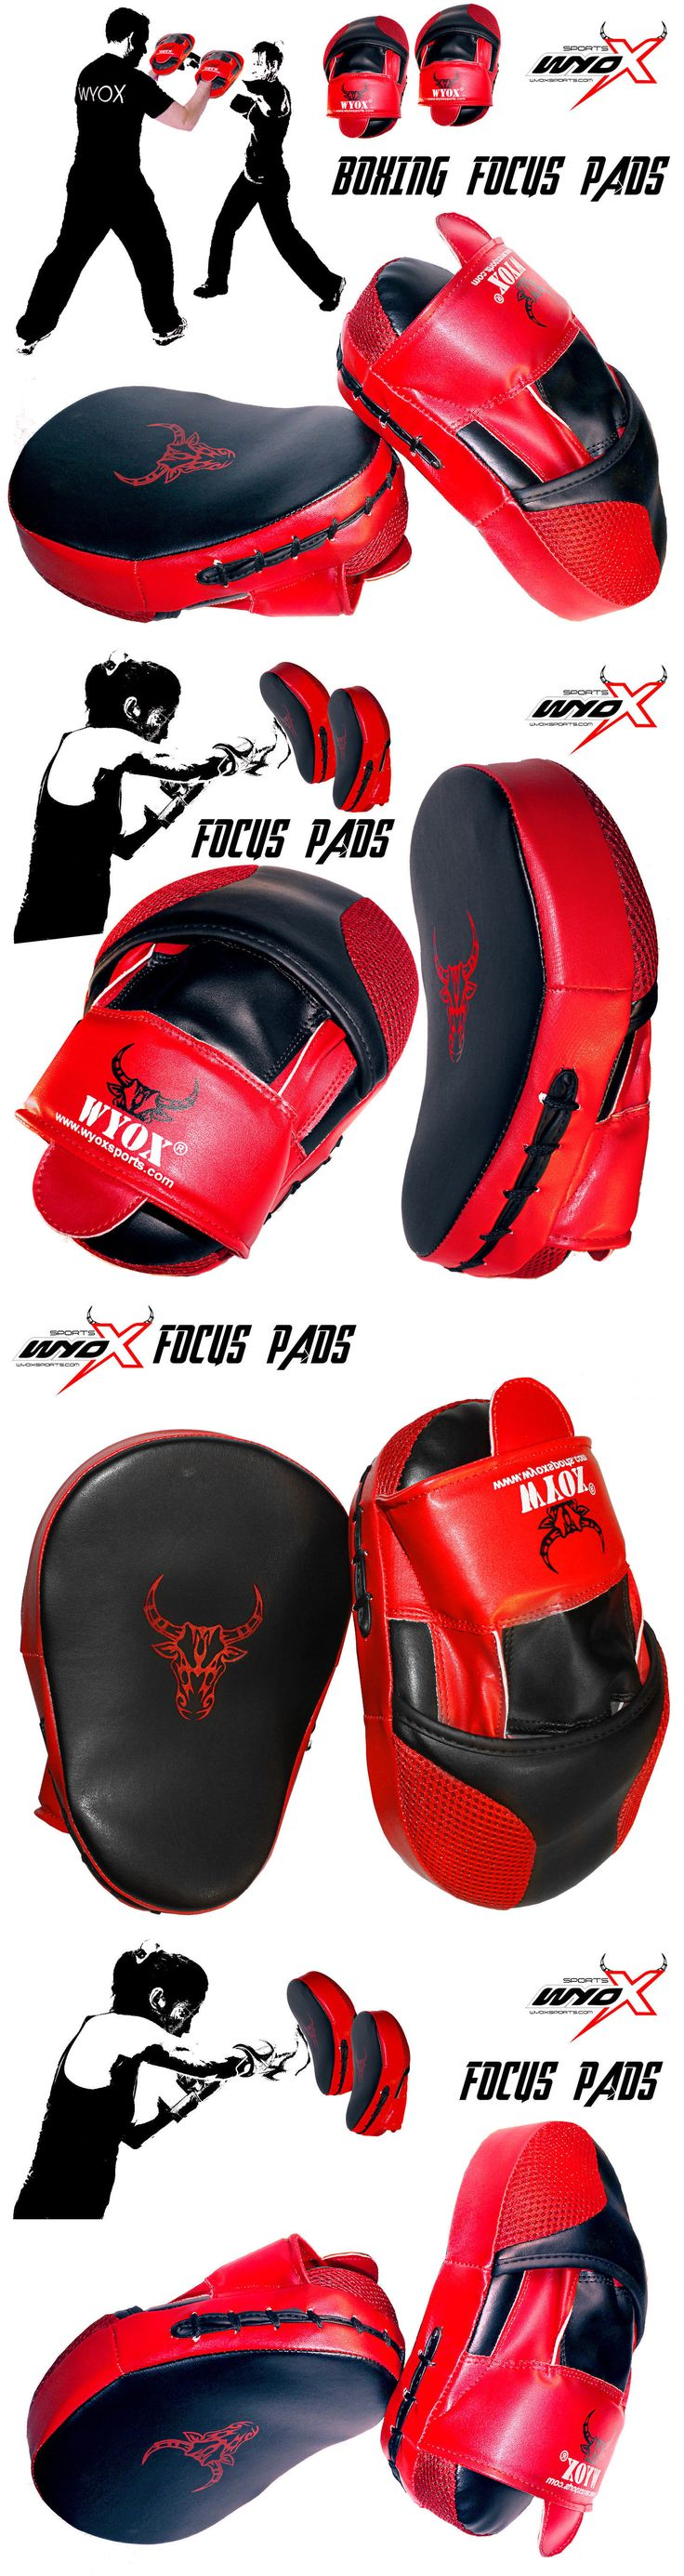 Strike Pads and Mitts 179789: Wyox Curved Focus Pads Mitts Hook Jab Punch Bag Kick Boxing Muay Thai Mma 2Pcs -> BUY IT NOW ONLY: $87.01 on eBay!